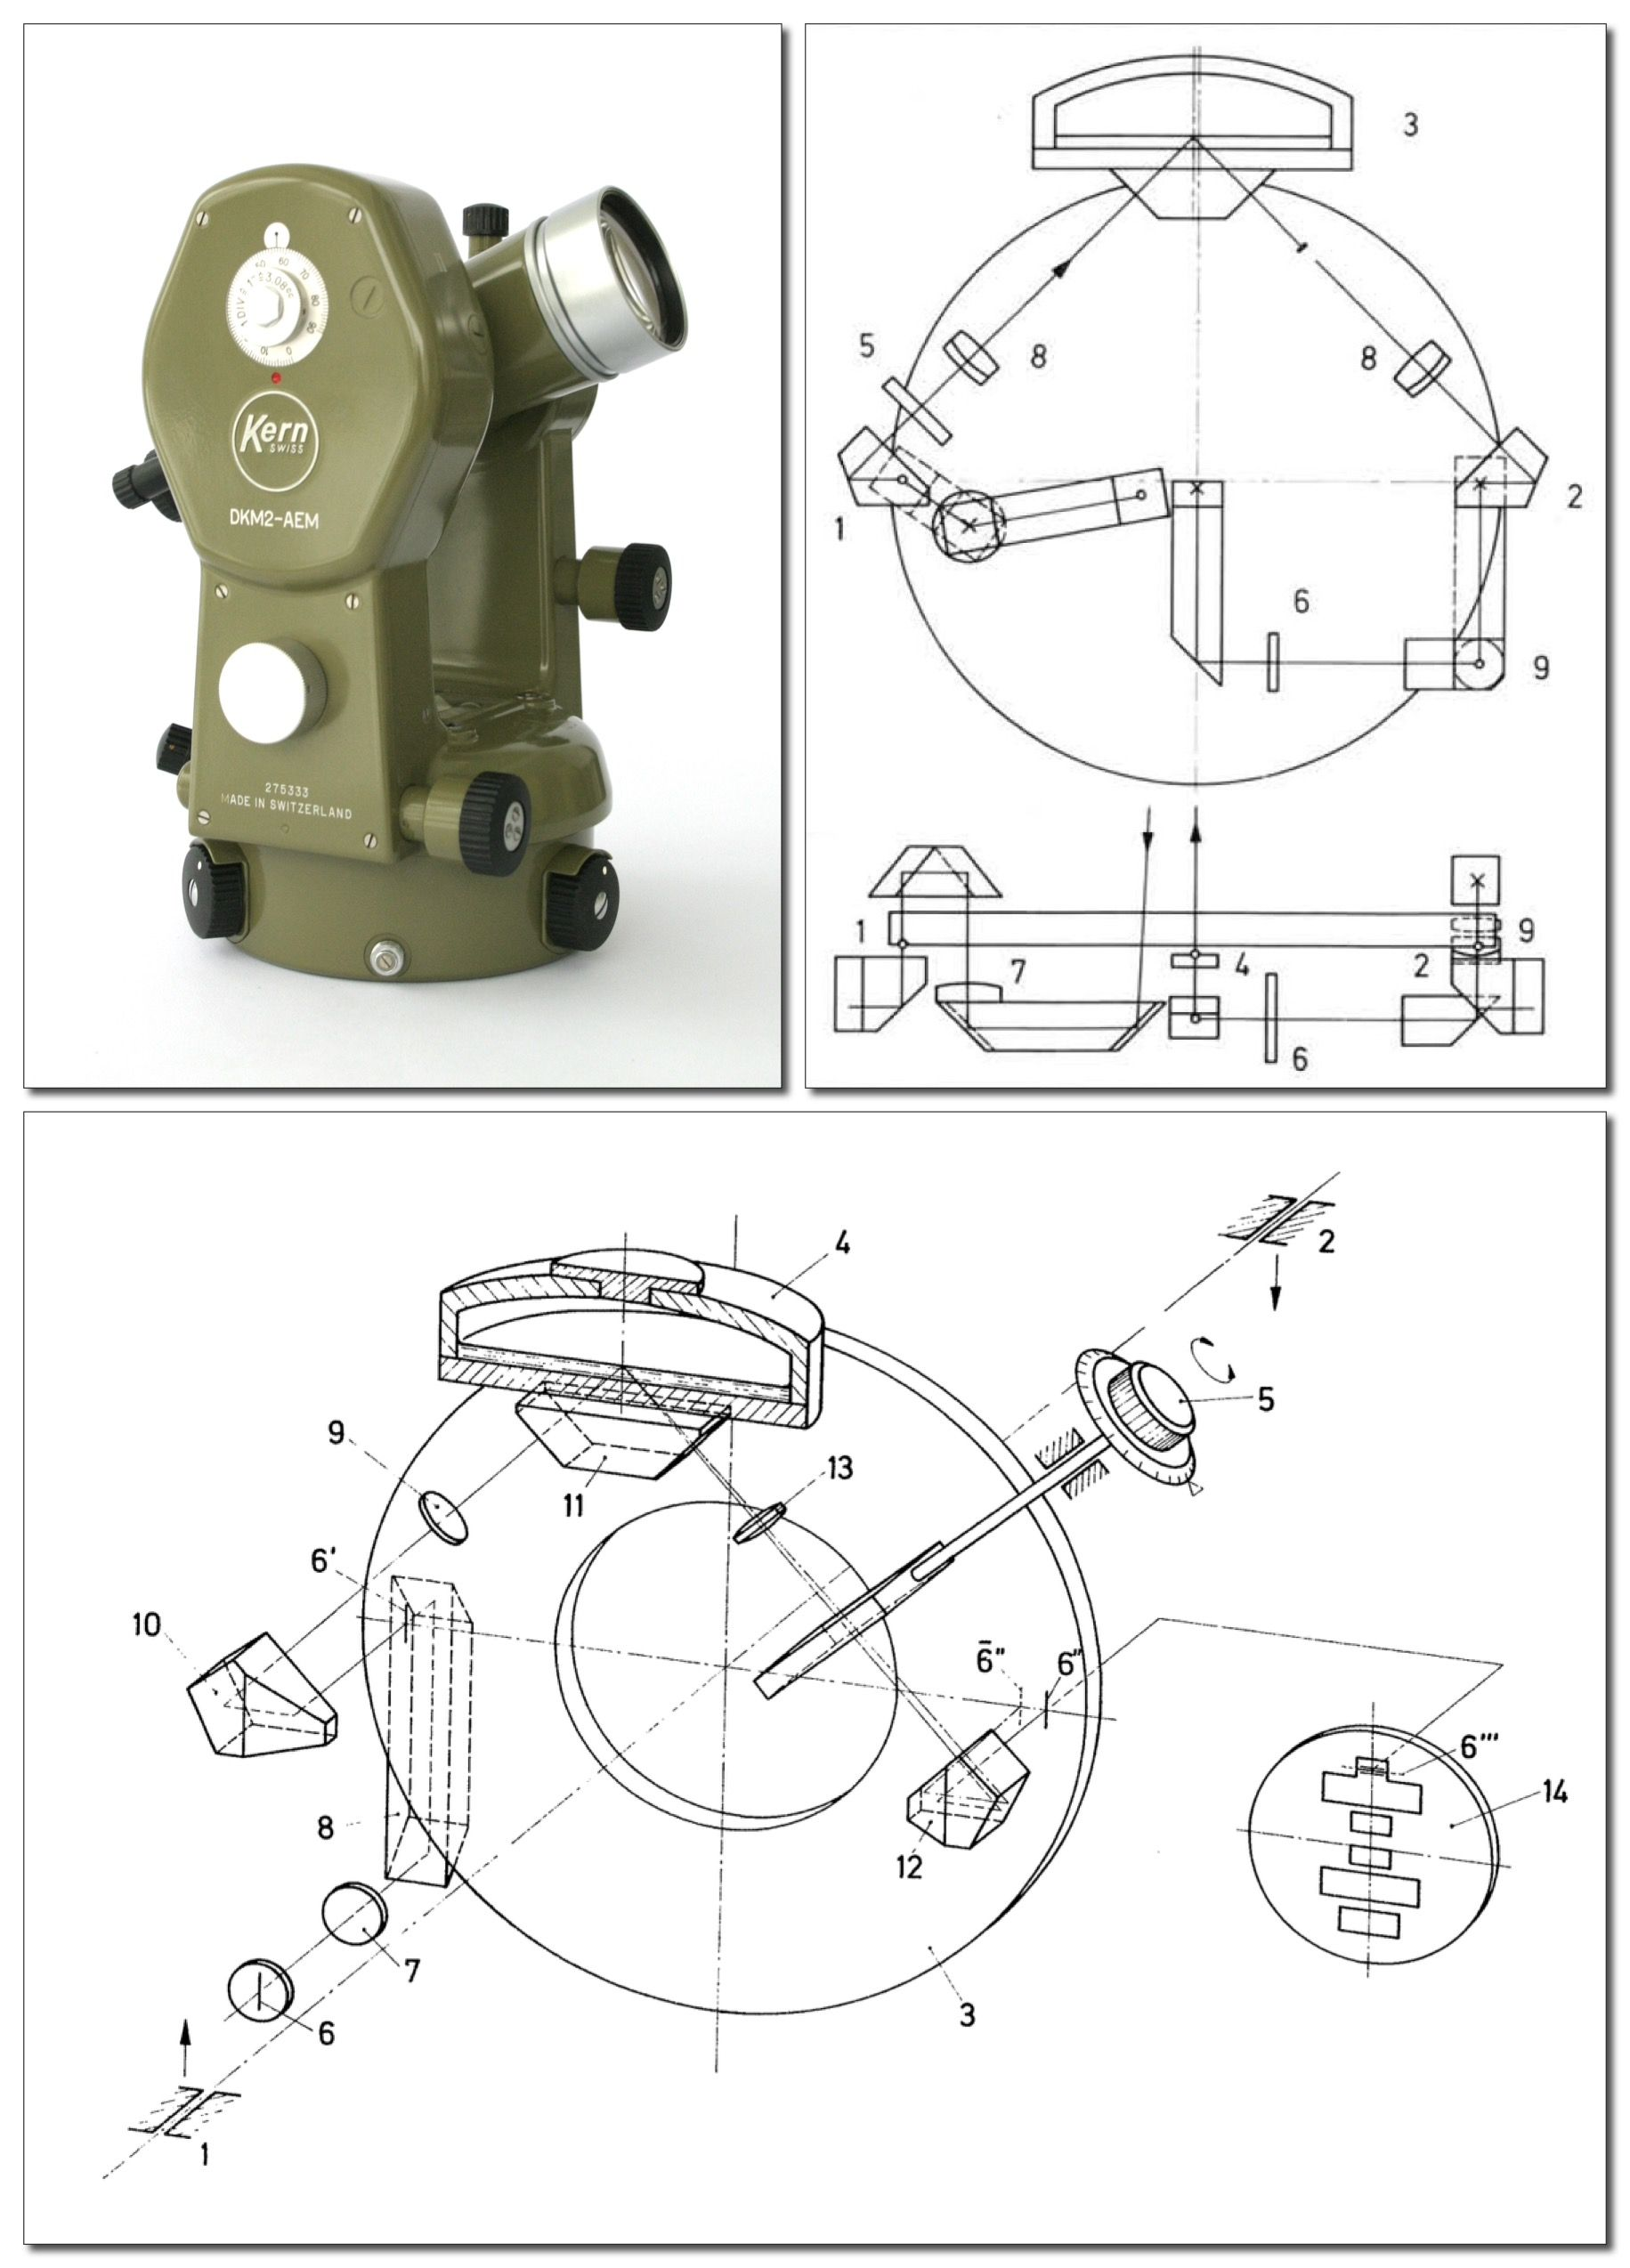 Dkm2 Am Theodolite With Built In Trunnion Axis Micrometer